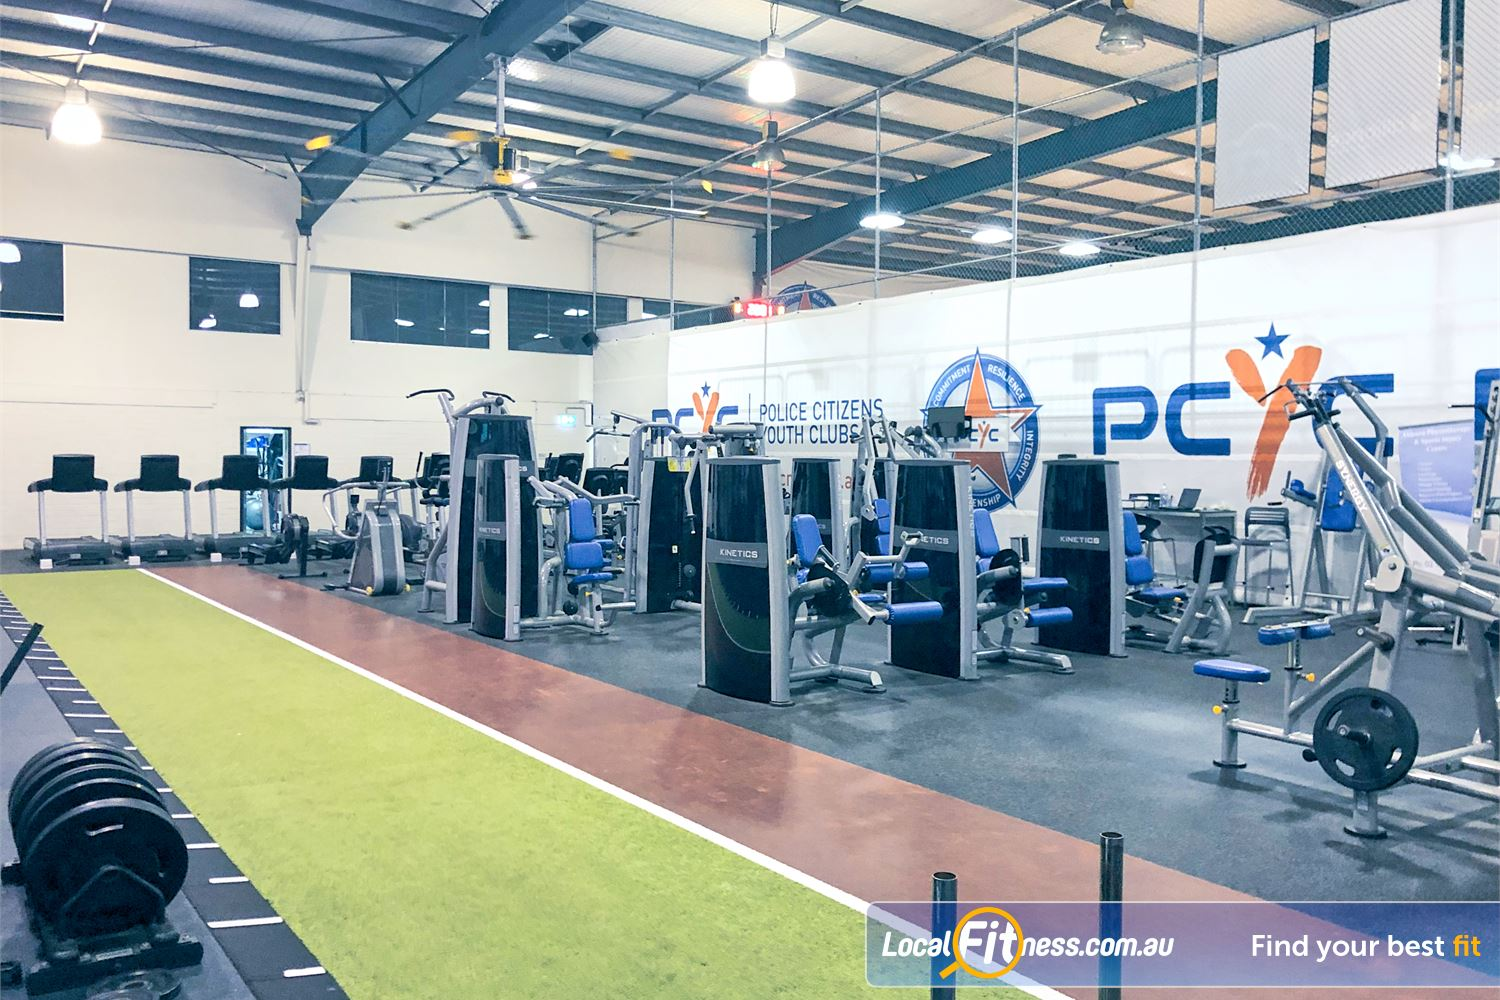 PCYC Auburn Lidcombe The indoor sled and running track in our functional training zone.